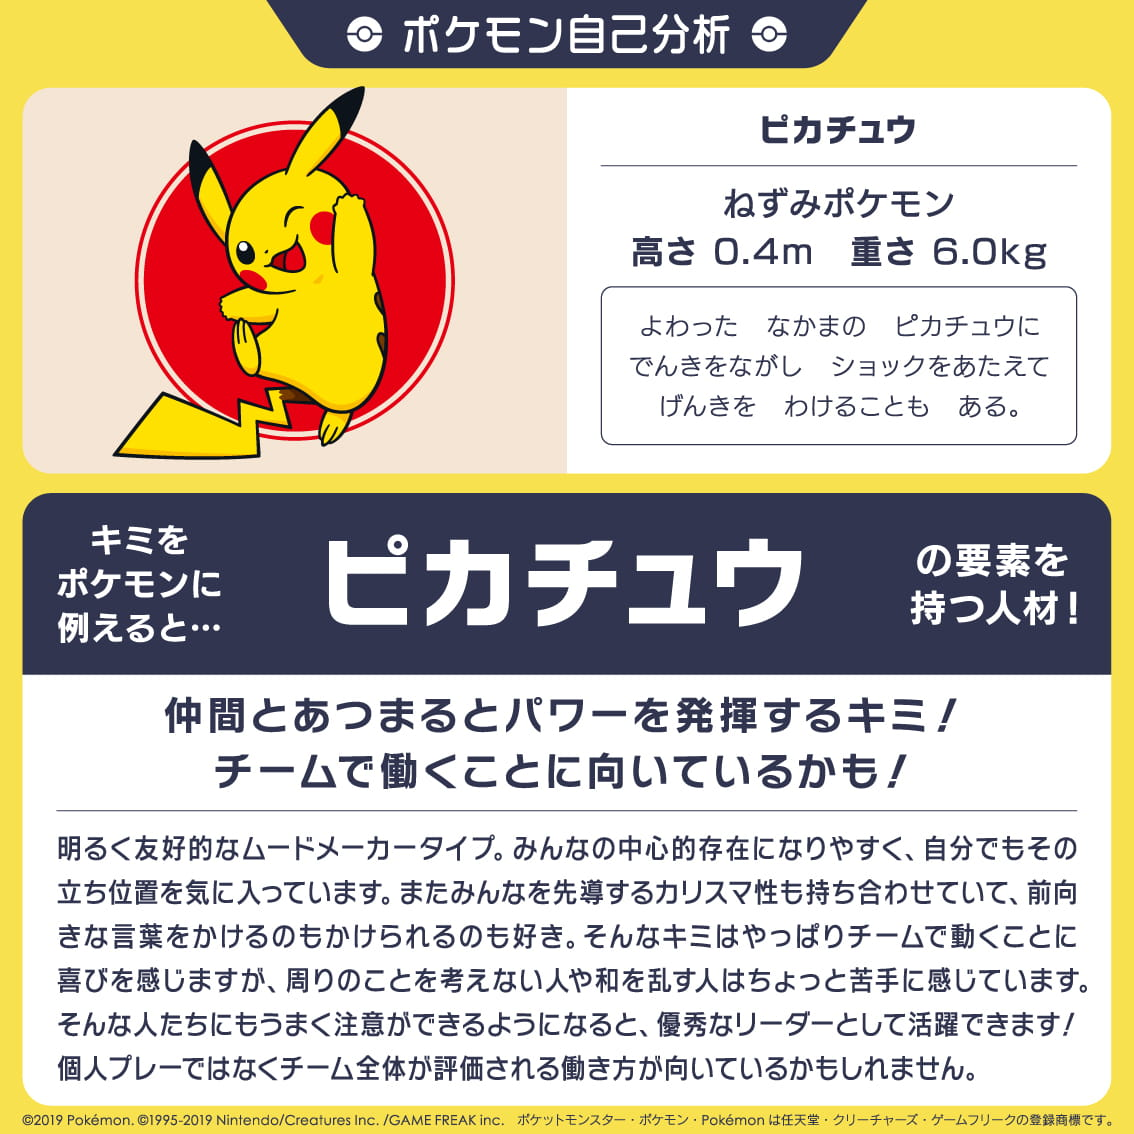 #ポケモン自己分析 is Trending Worldwide on Teitter now!Twitter popular topics latest news in Japan July 2019